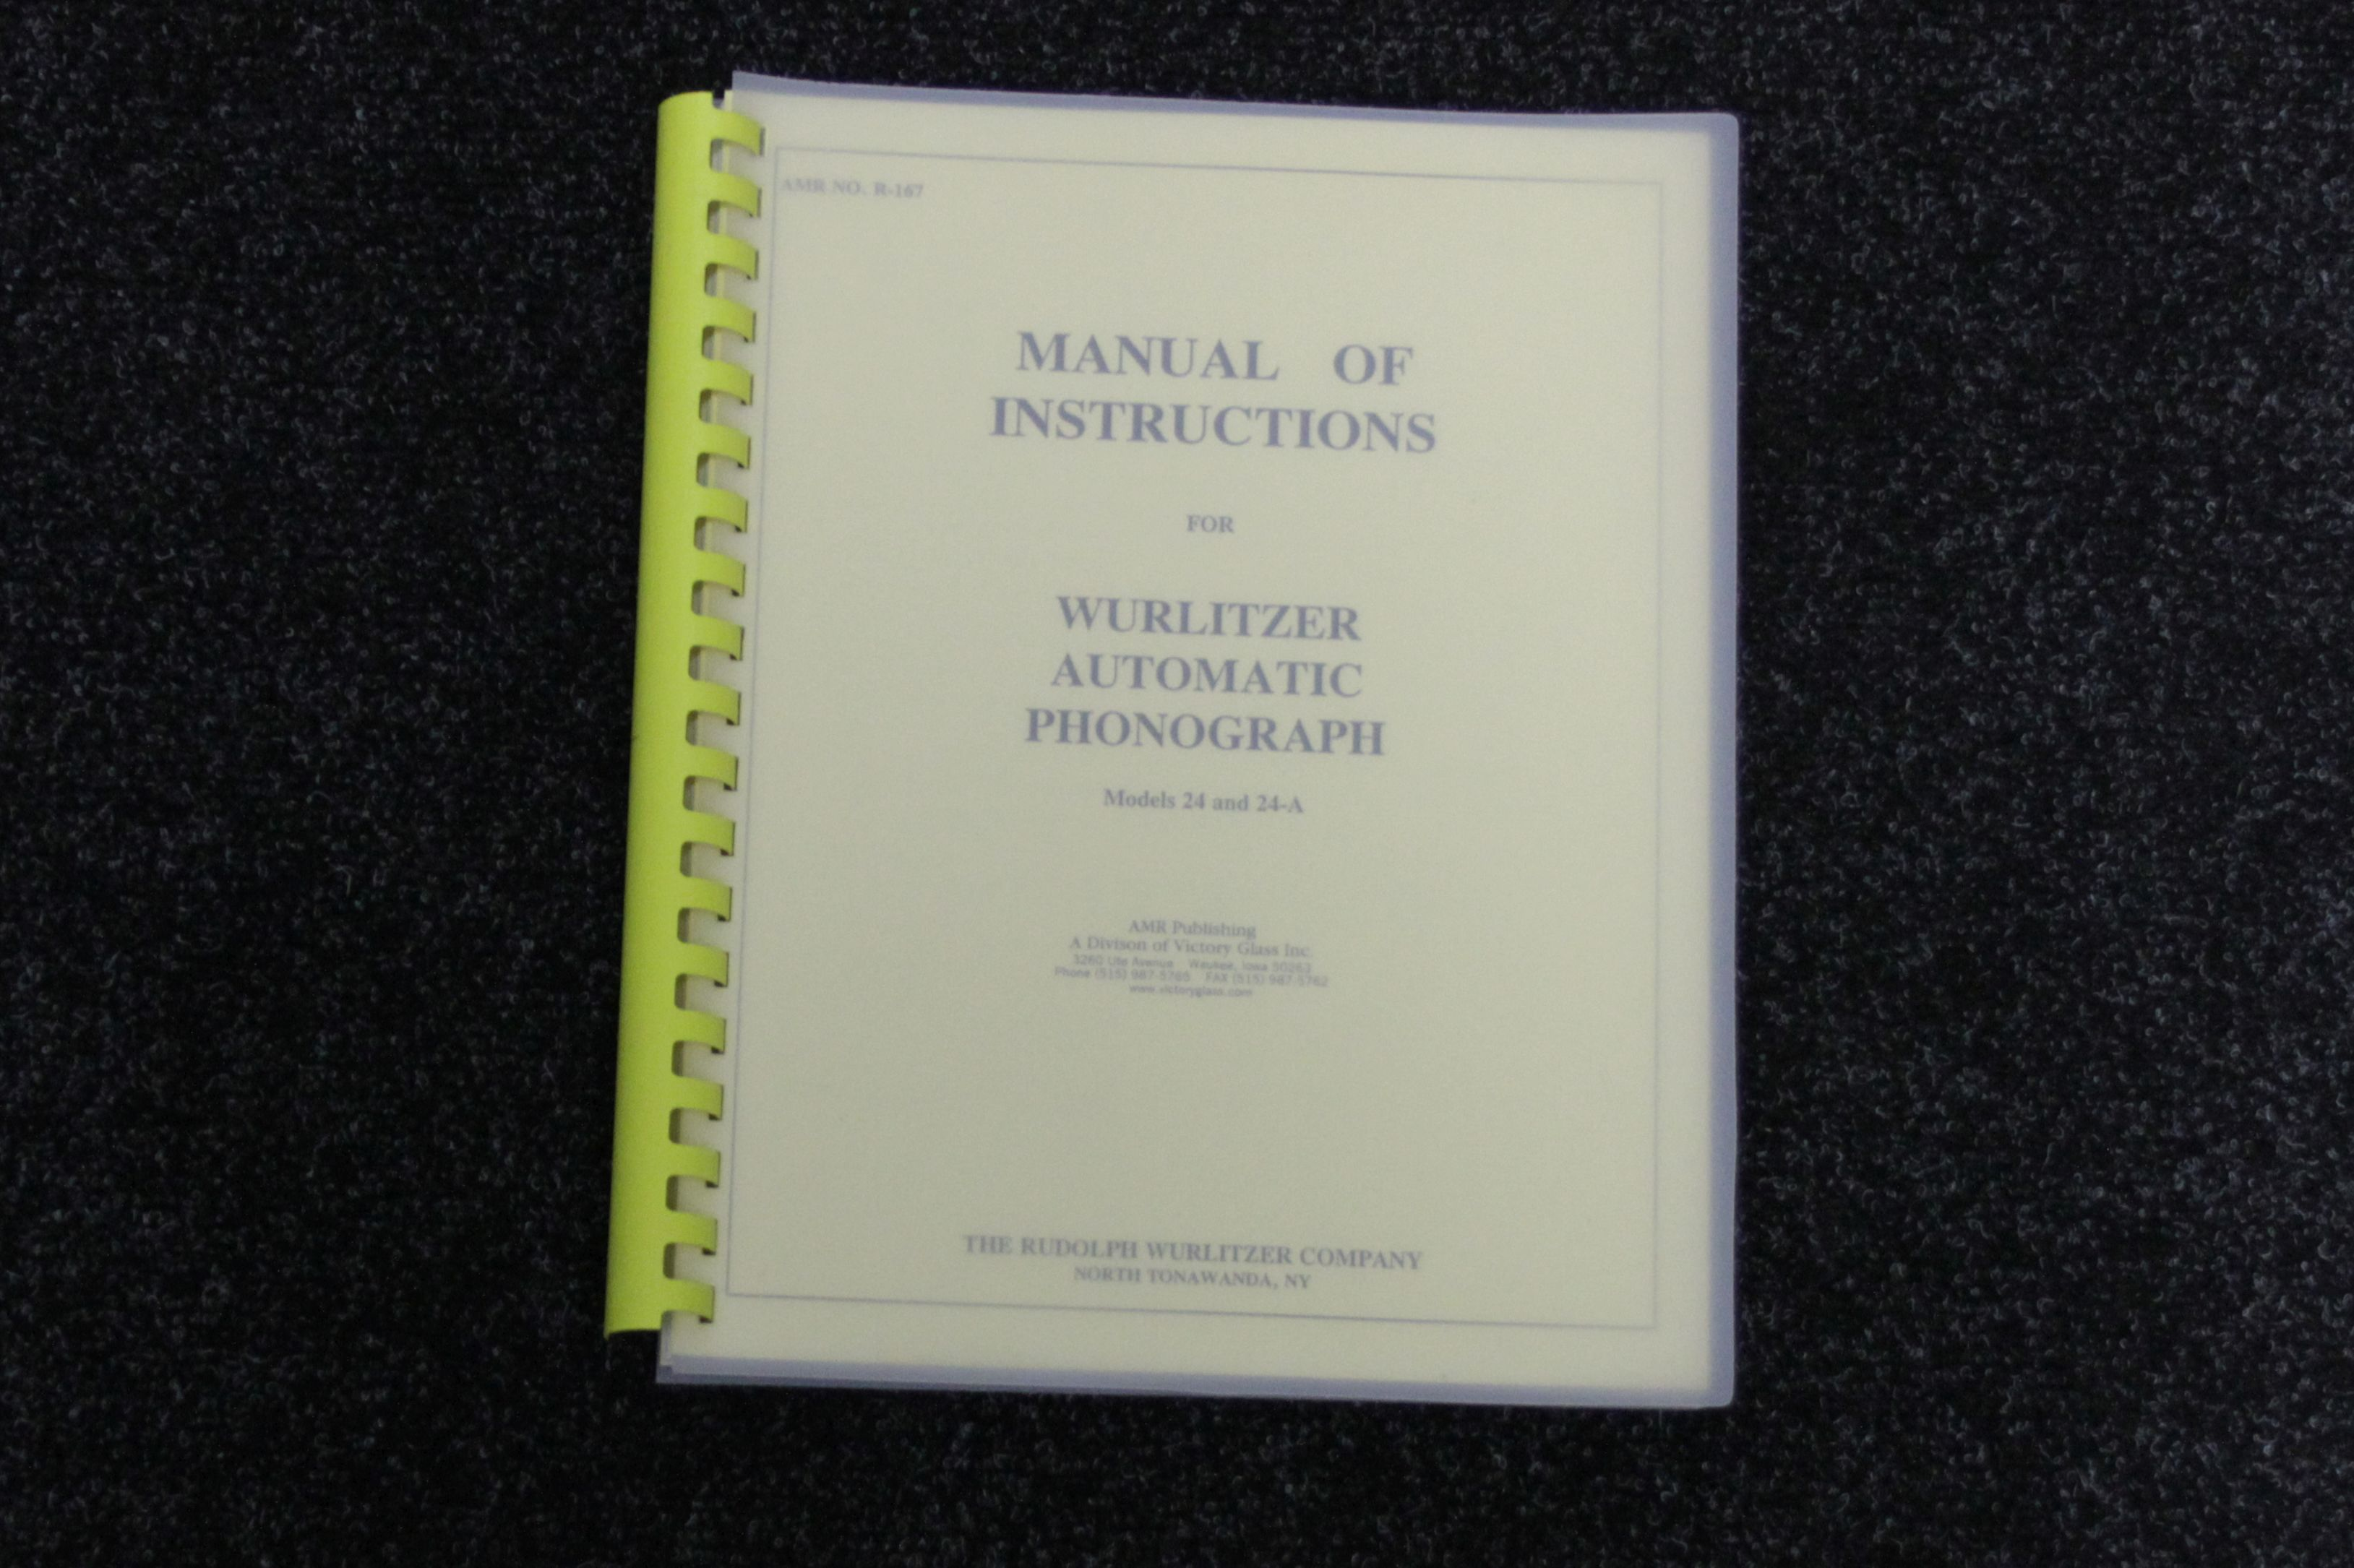 Wurlitzer Manual of Instruction 24 en 24 A